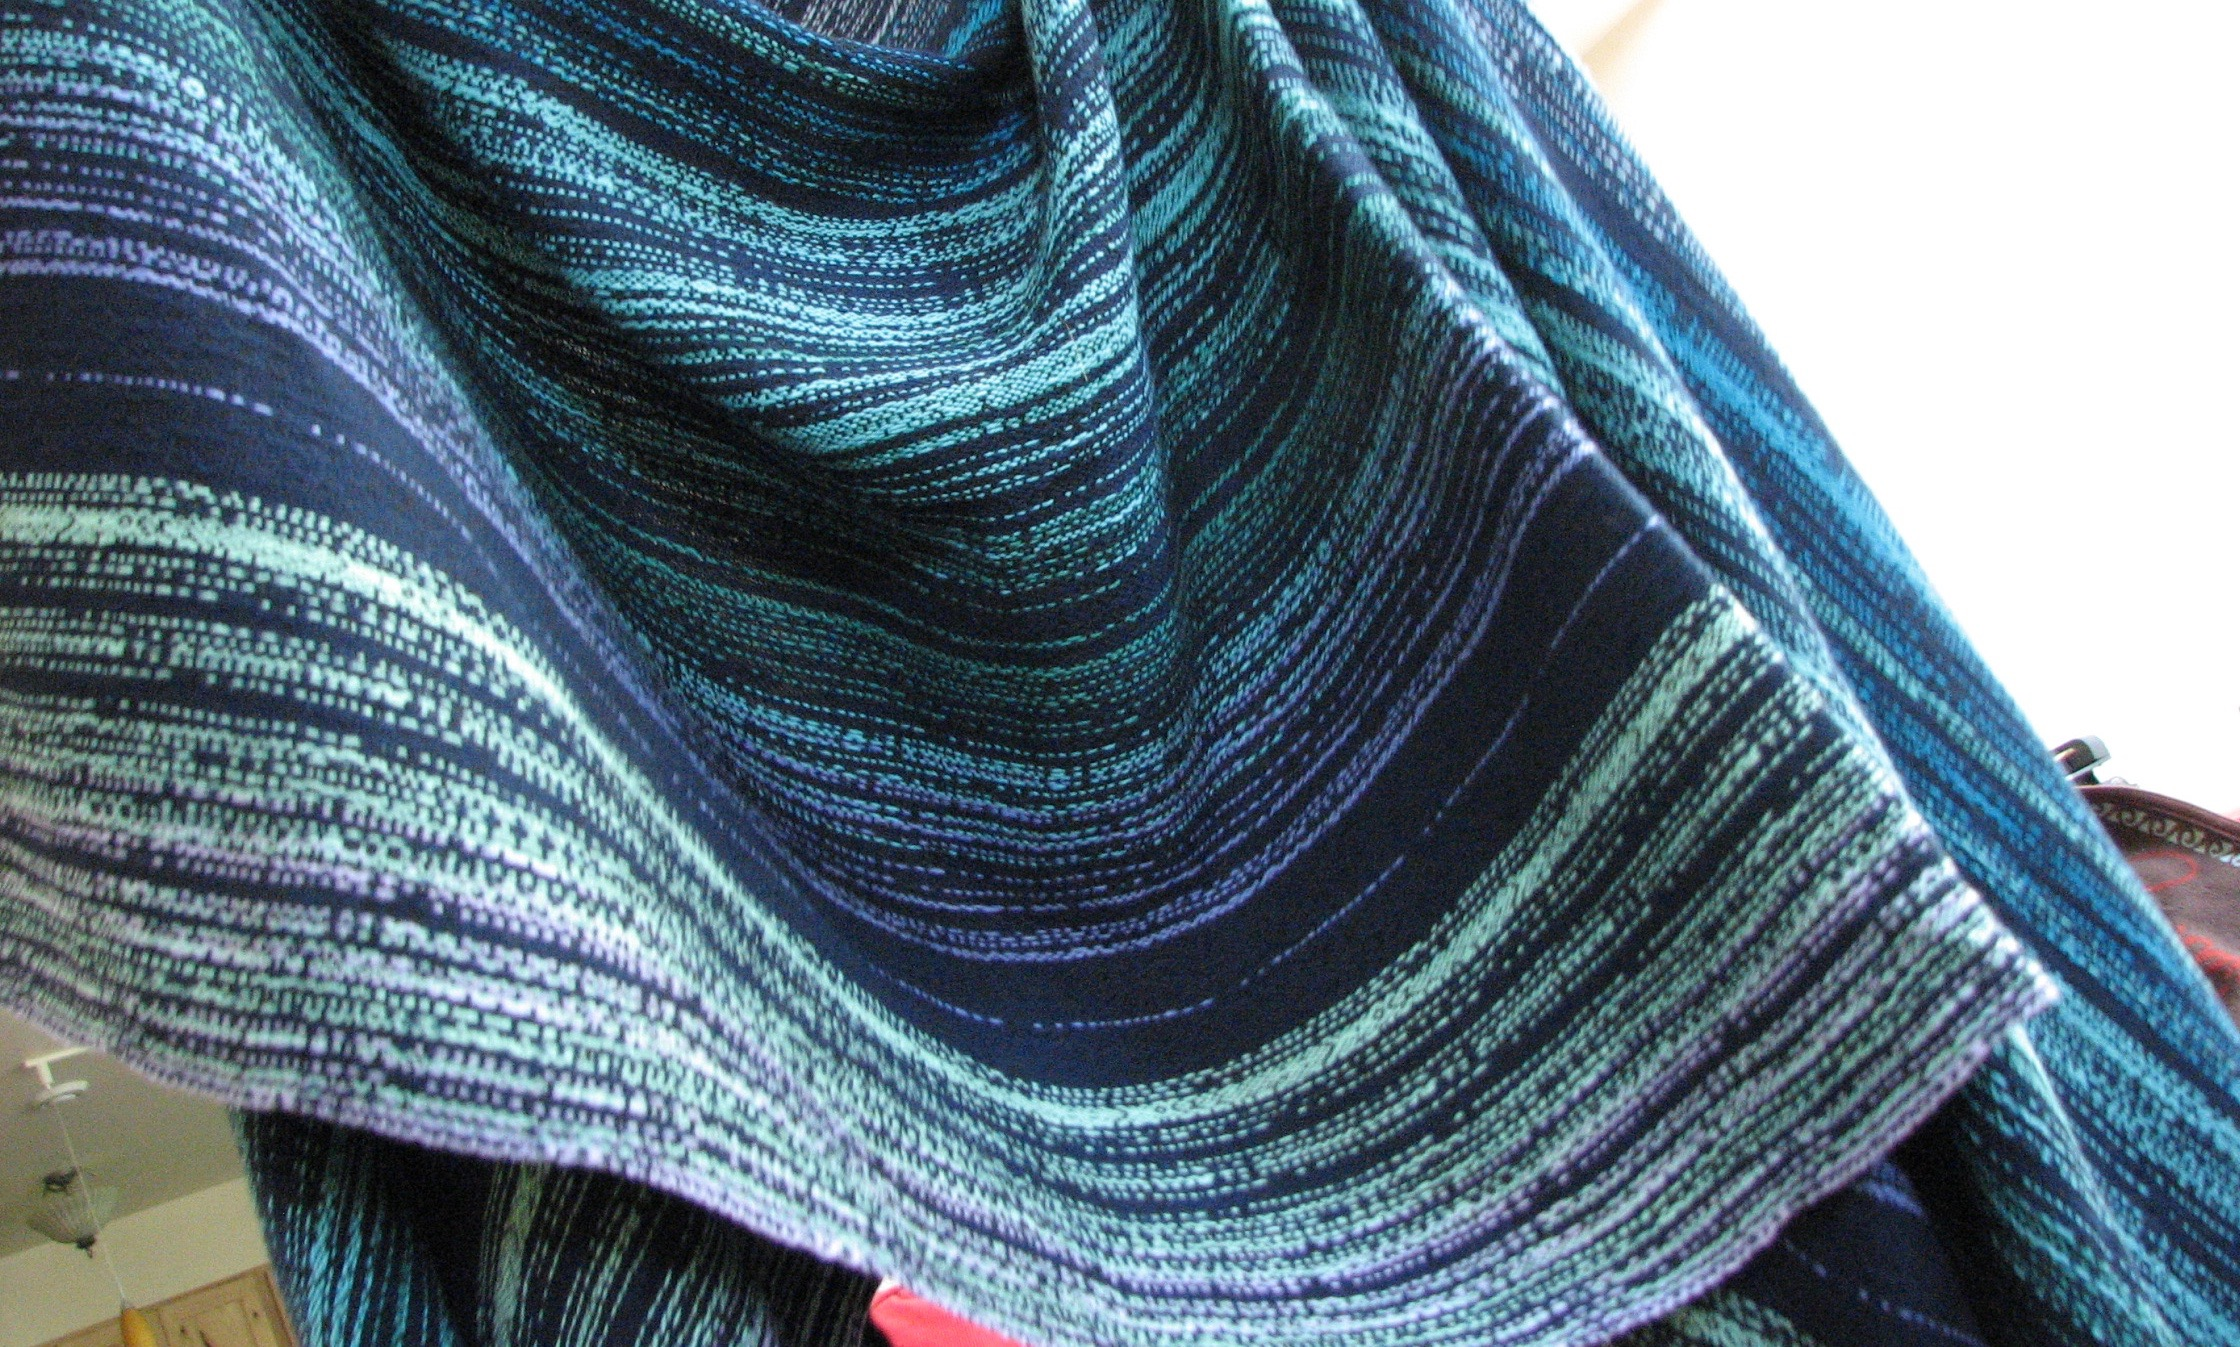 Fire in the Sky - a handwoven baby wrap inspired by the aurora borealis | 14 Mile Farm Handweaving and Homesteading in Alaska